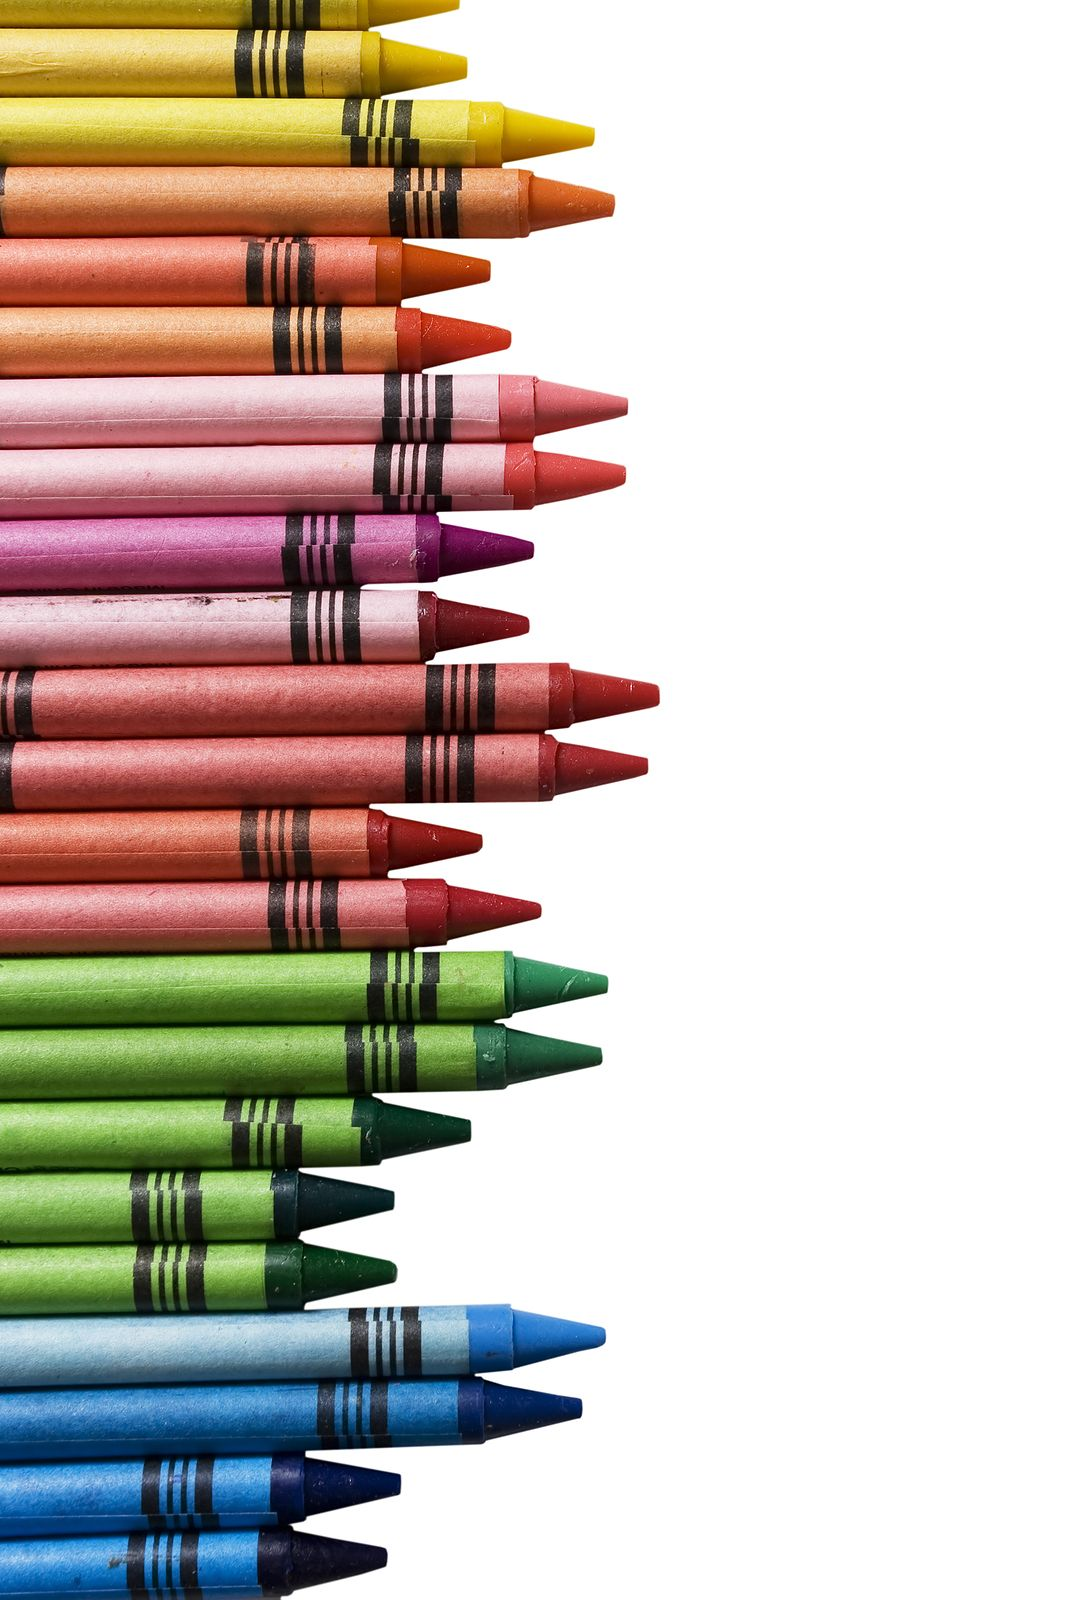 1081x1600 Crayons Wallpapers High Quality | Download Free